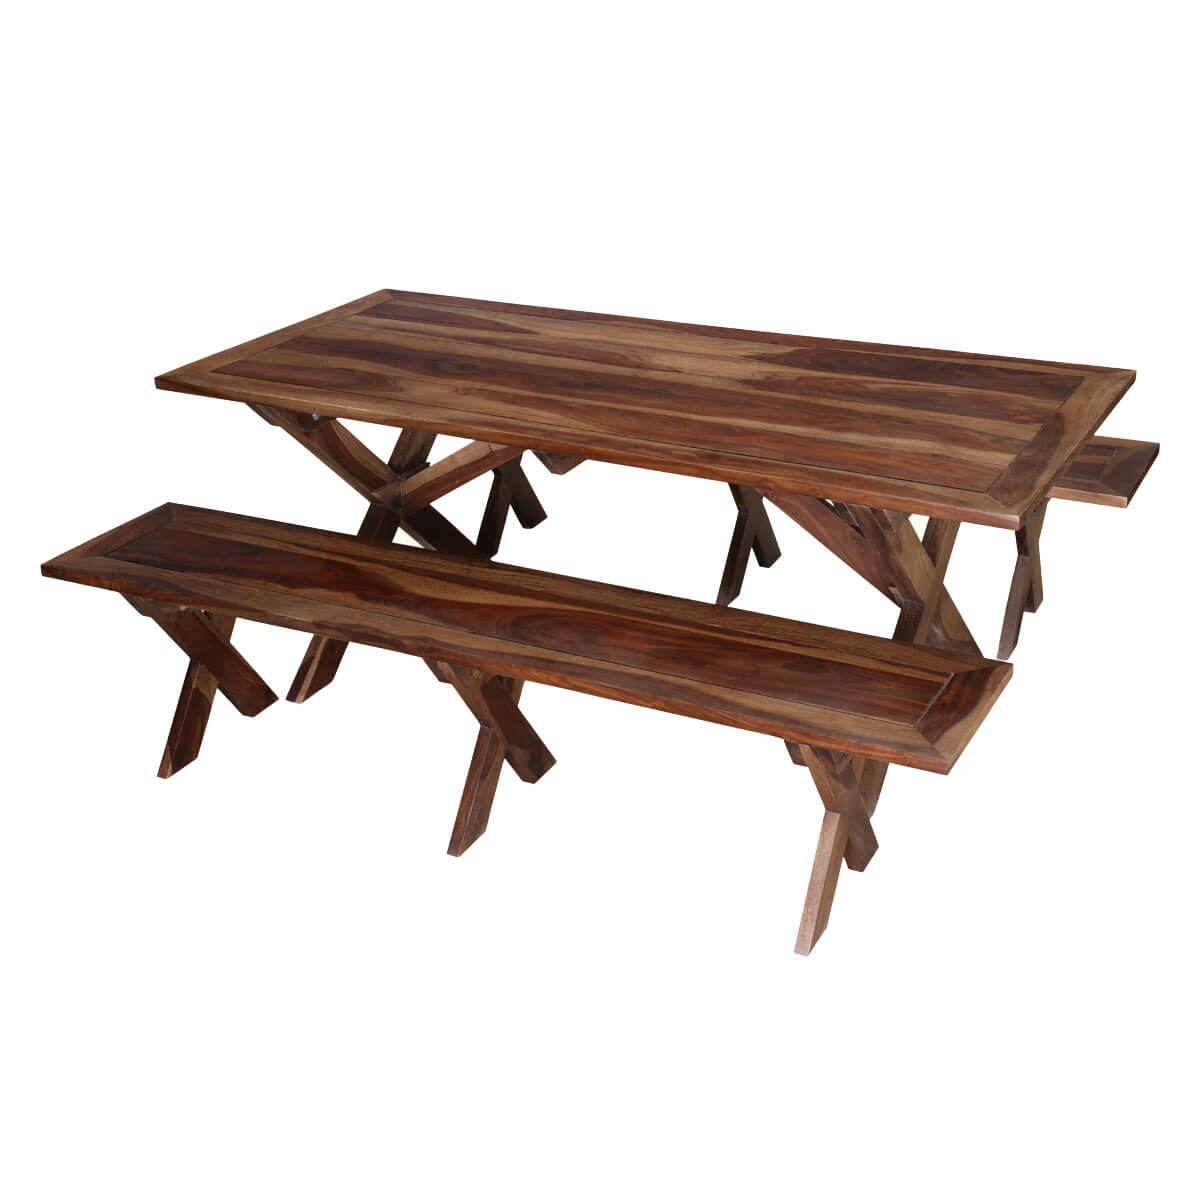 Traditional american picnic style rustic dining table with for Traditional dining table with bench